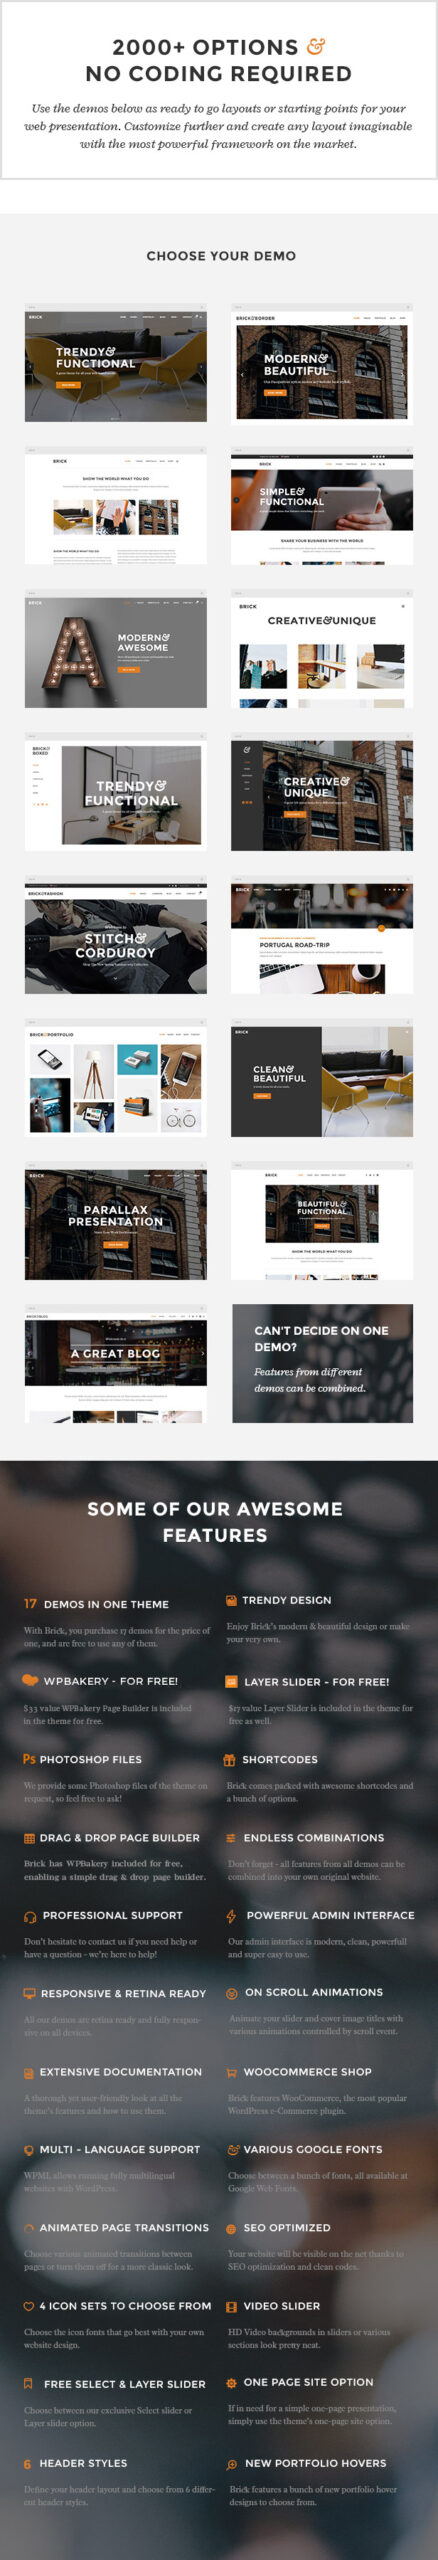 Brick - Digital Agency Theme - 1